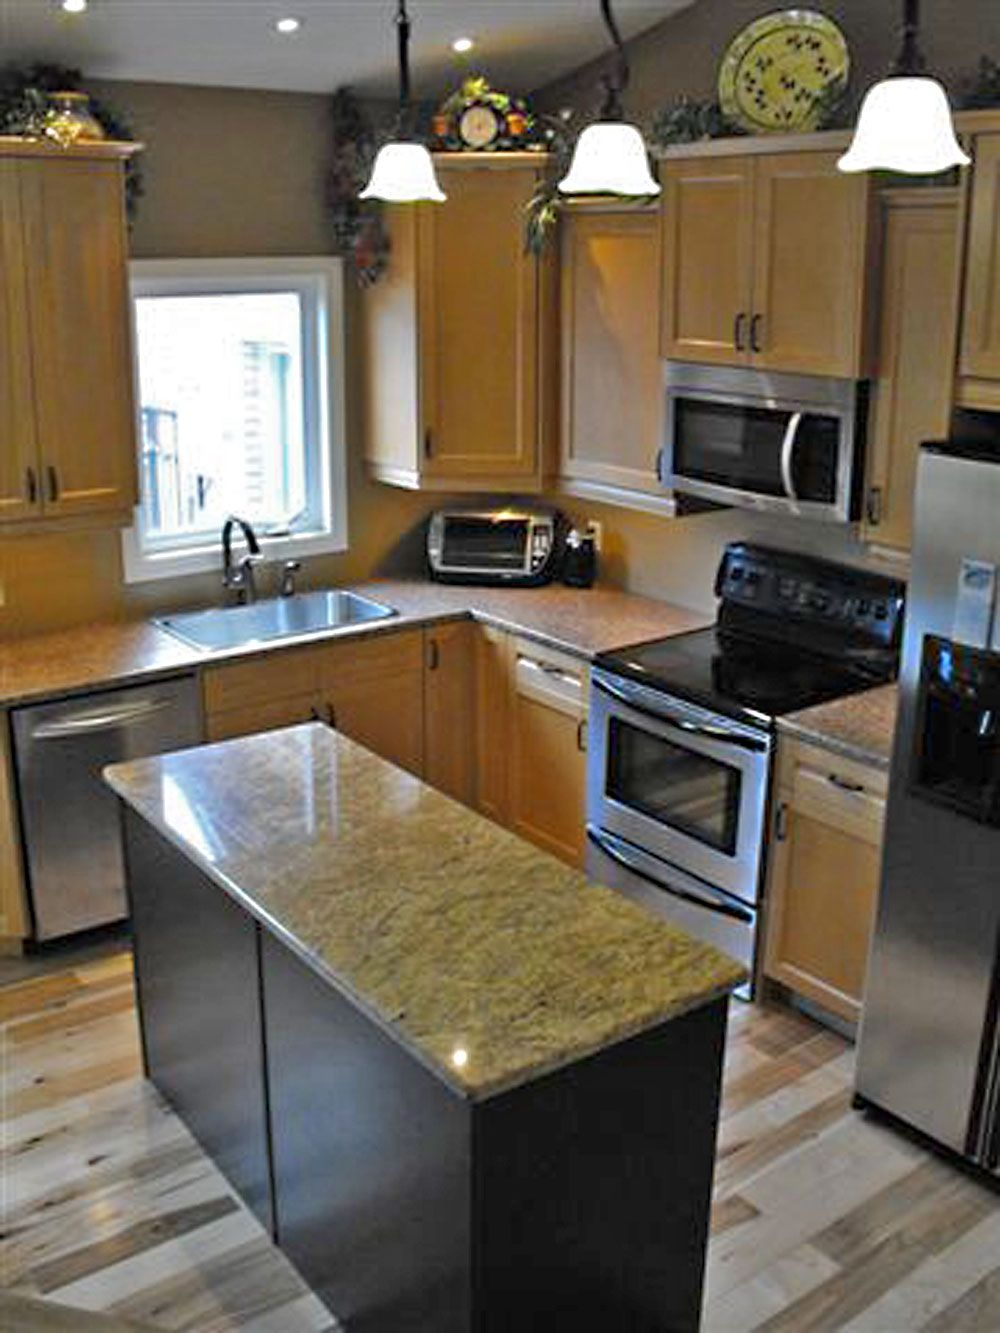 images of raised ranch kitchen remodel | Virtual Tours ...